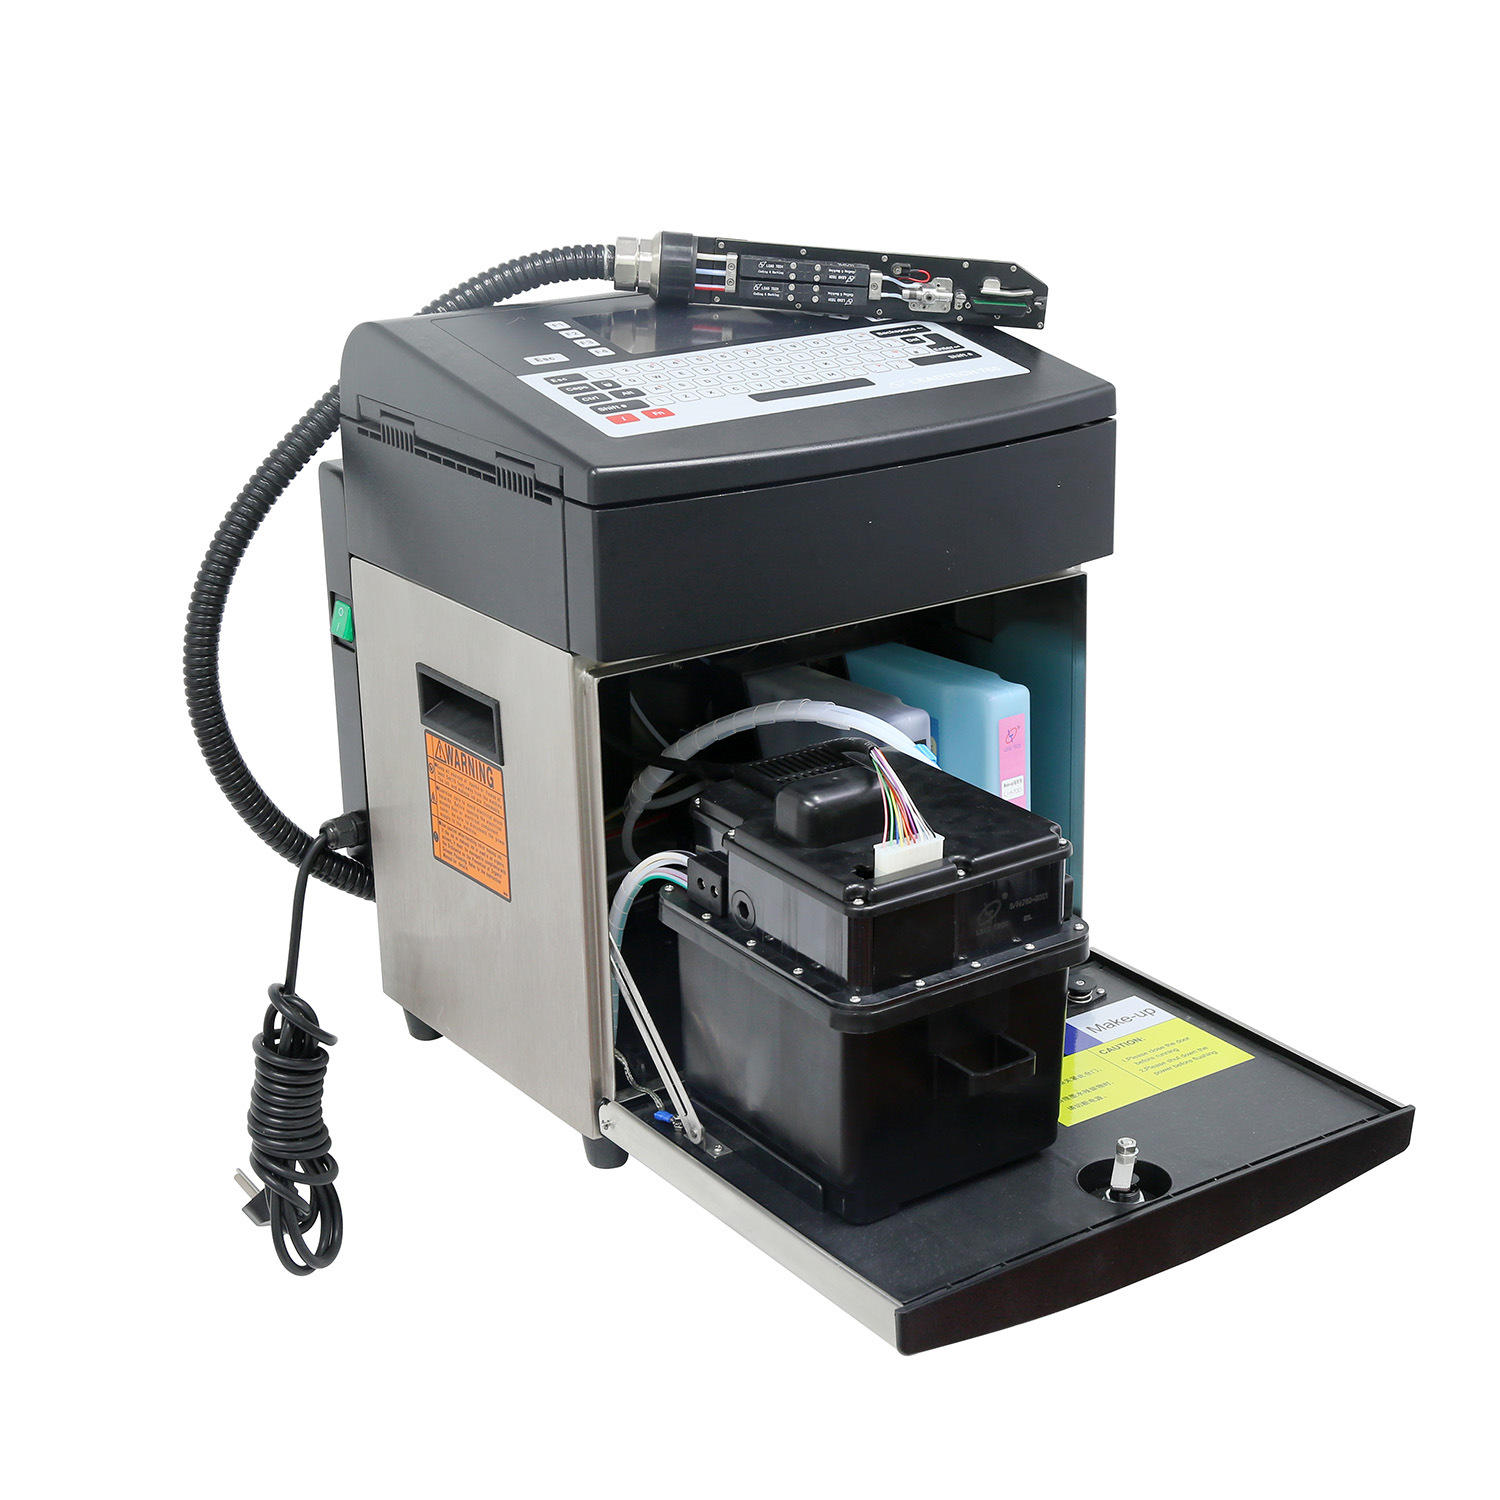 Leadtech Lt760 Numbering Printing Machines Jet Printer